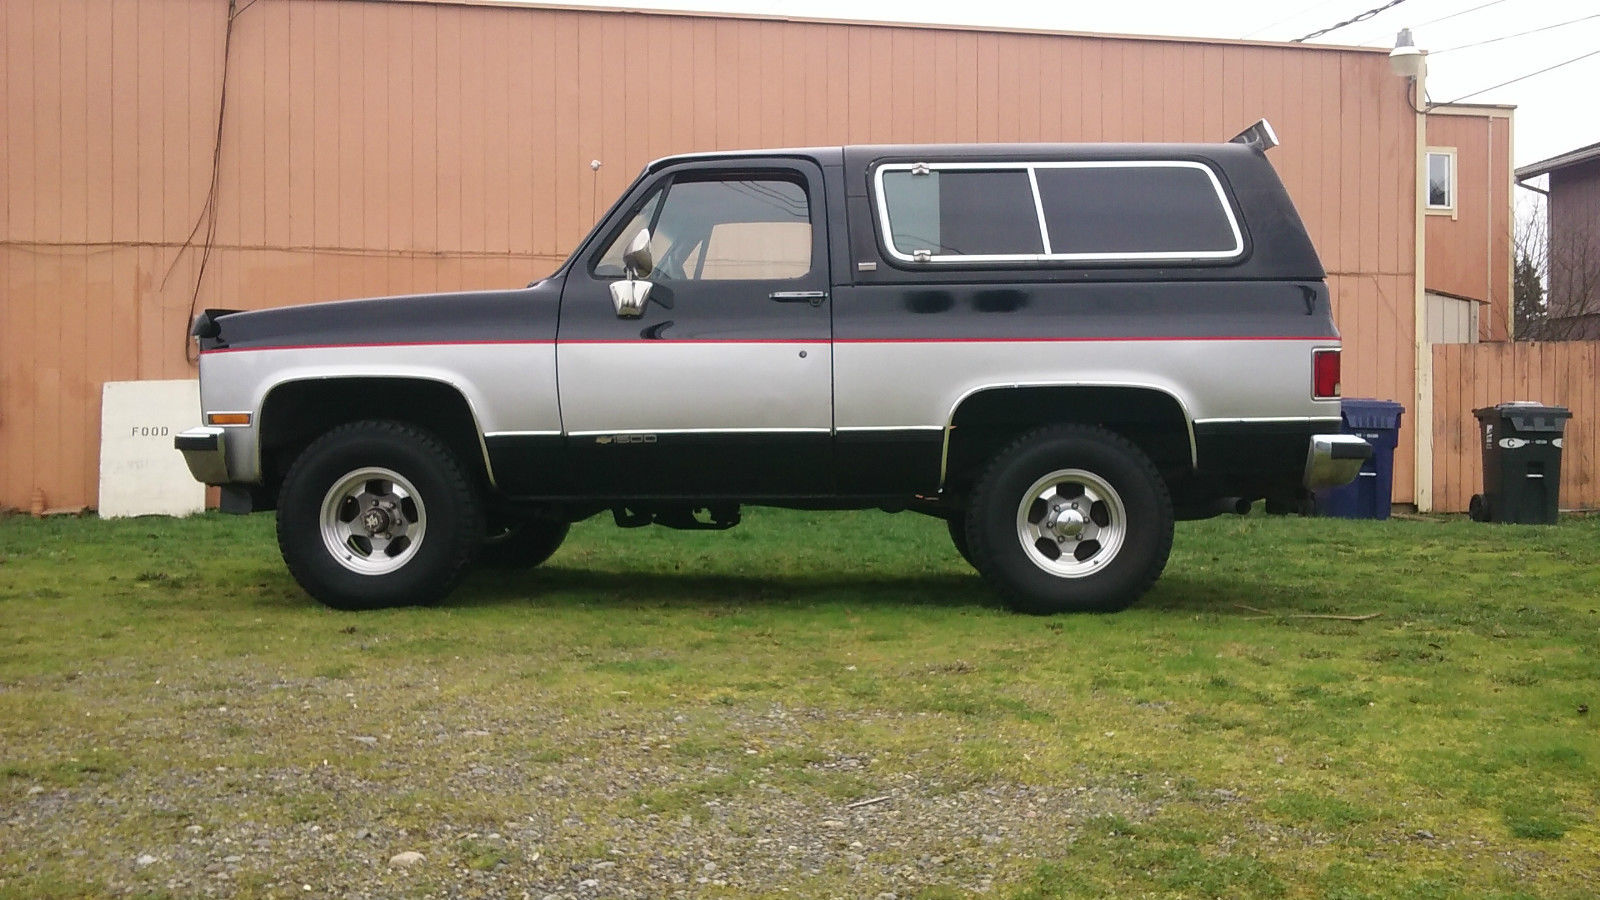 1971 Chevy Blazer For Sale New Car Specs And Price 2019 2020 Wiring Diagram 1991 Chevrolet K5 44